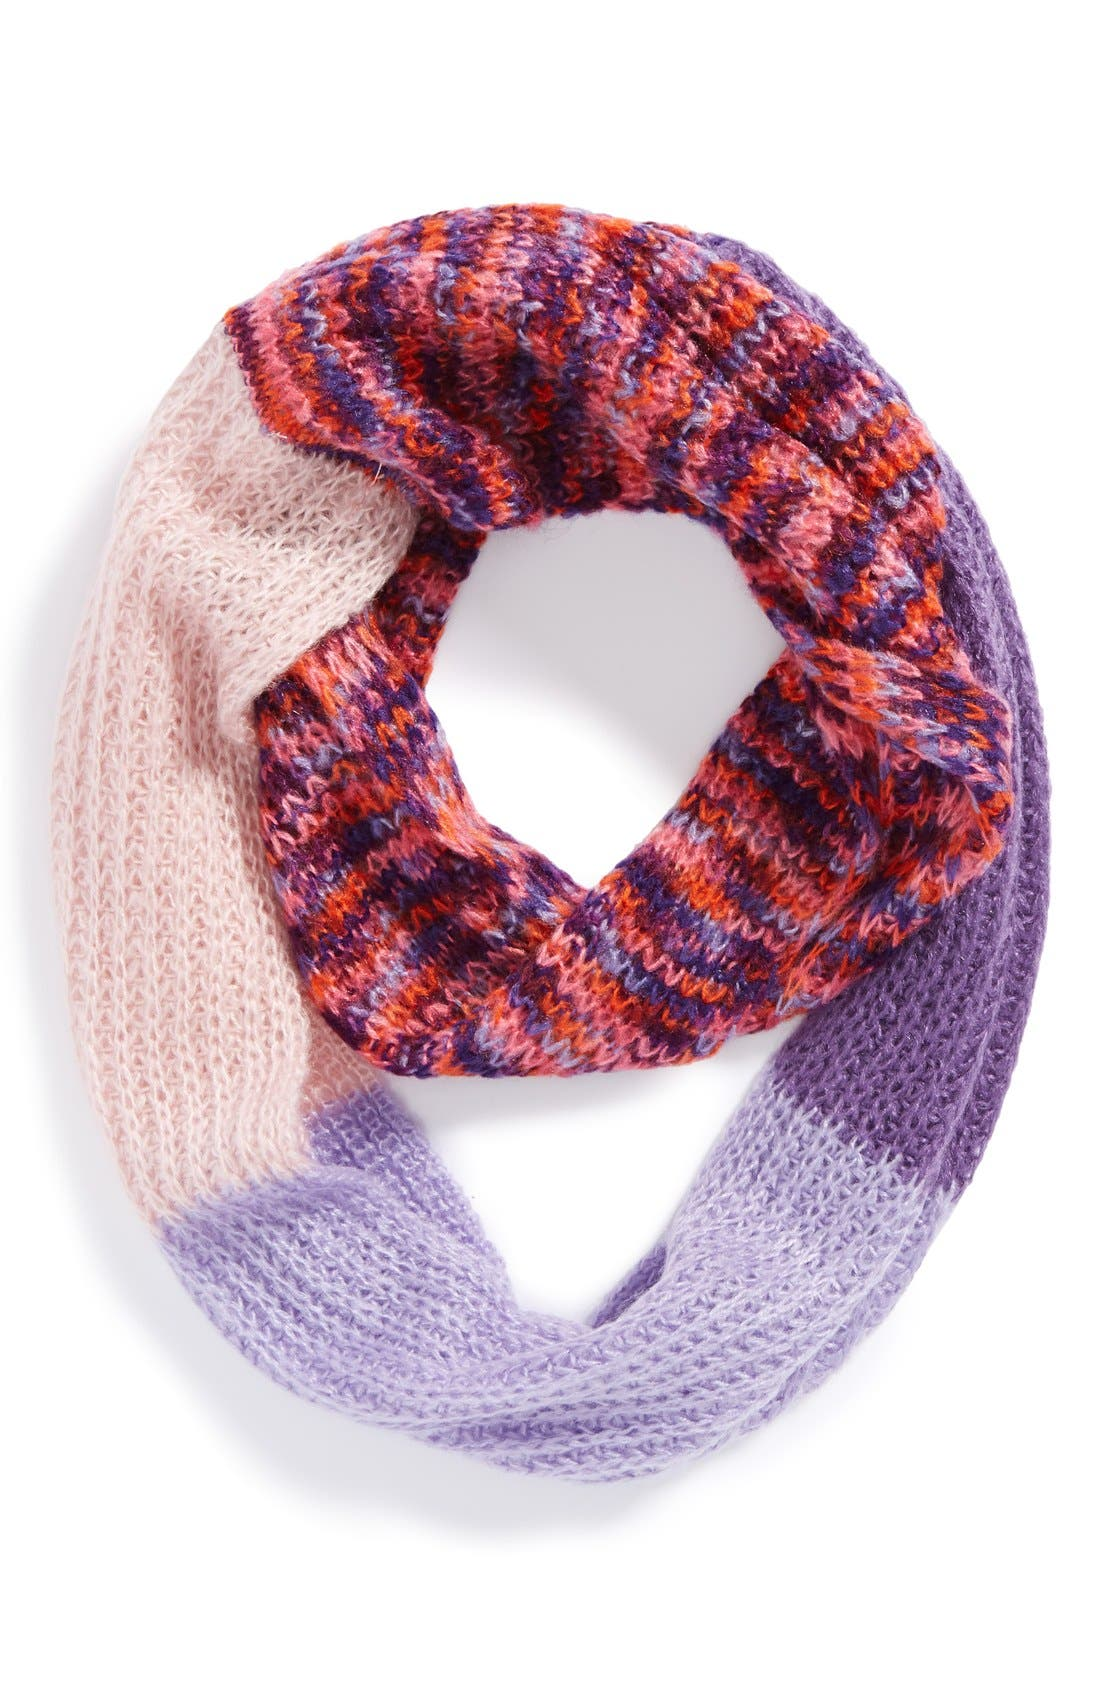 Alternate Image 1 Selected - Capelli of New York Colorblock Infinity Scarf (Girls)